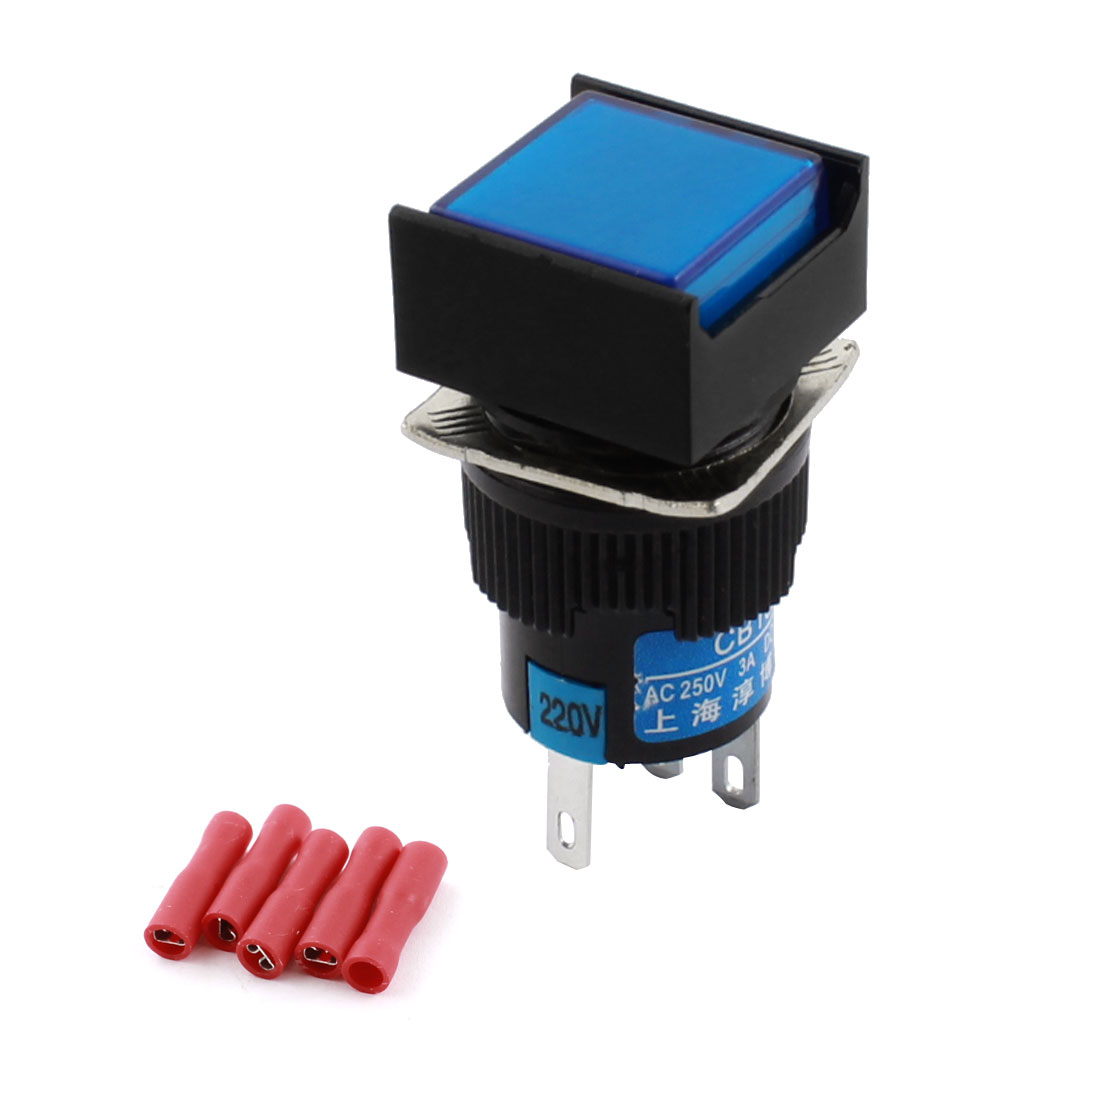 AC220V Blue Pilot Light 5Pins 16mm Threaded Panel Mounted SPDT Momentary Rectangle Head Pushbutton Switch w Crimp Terminals